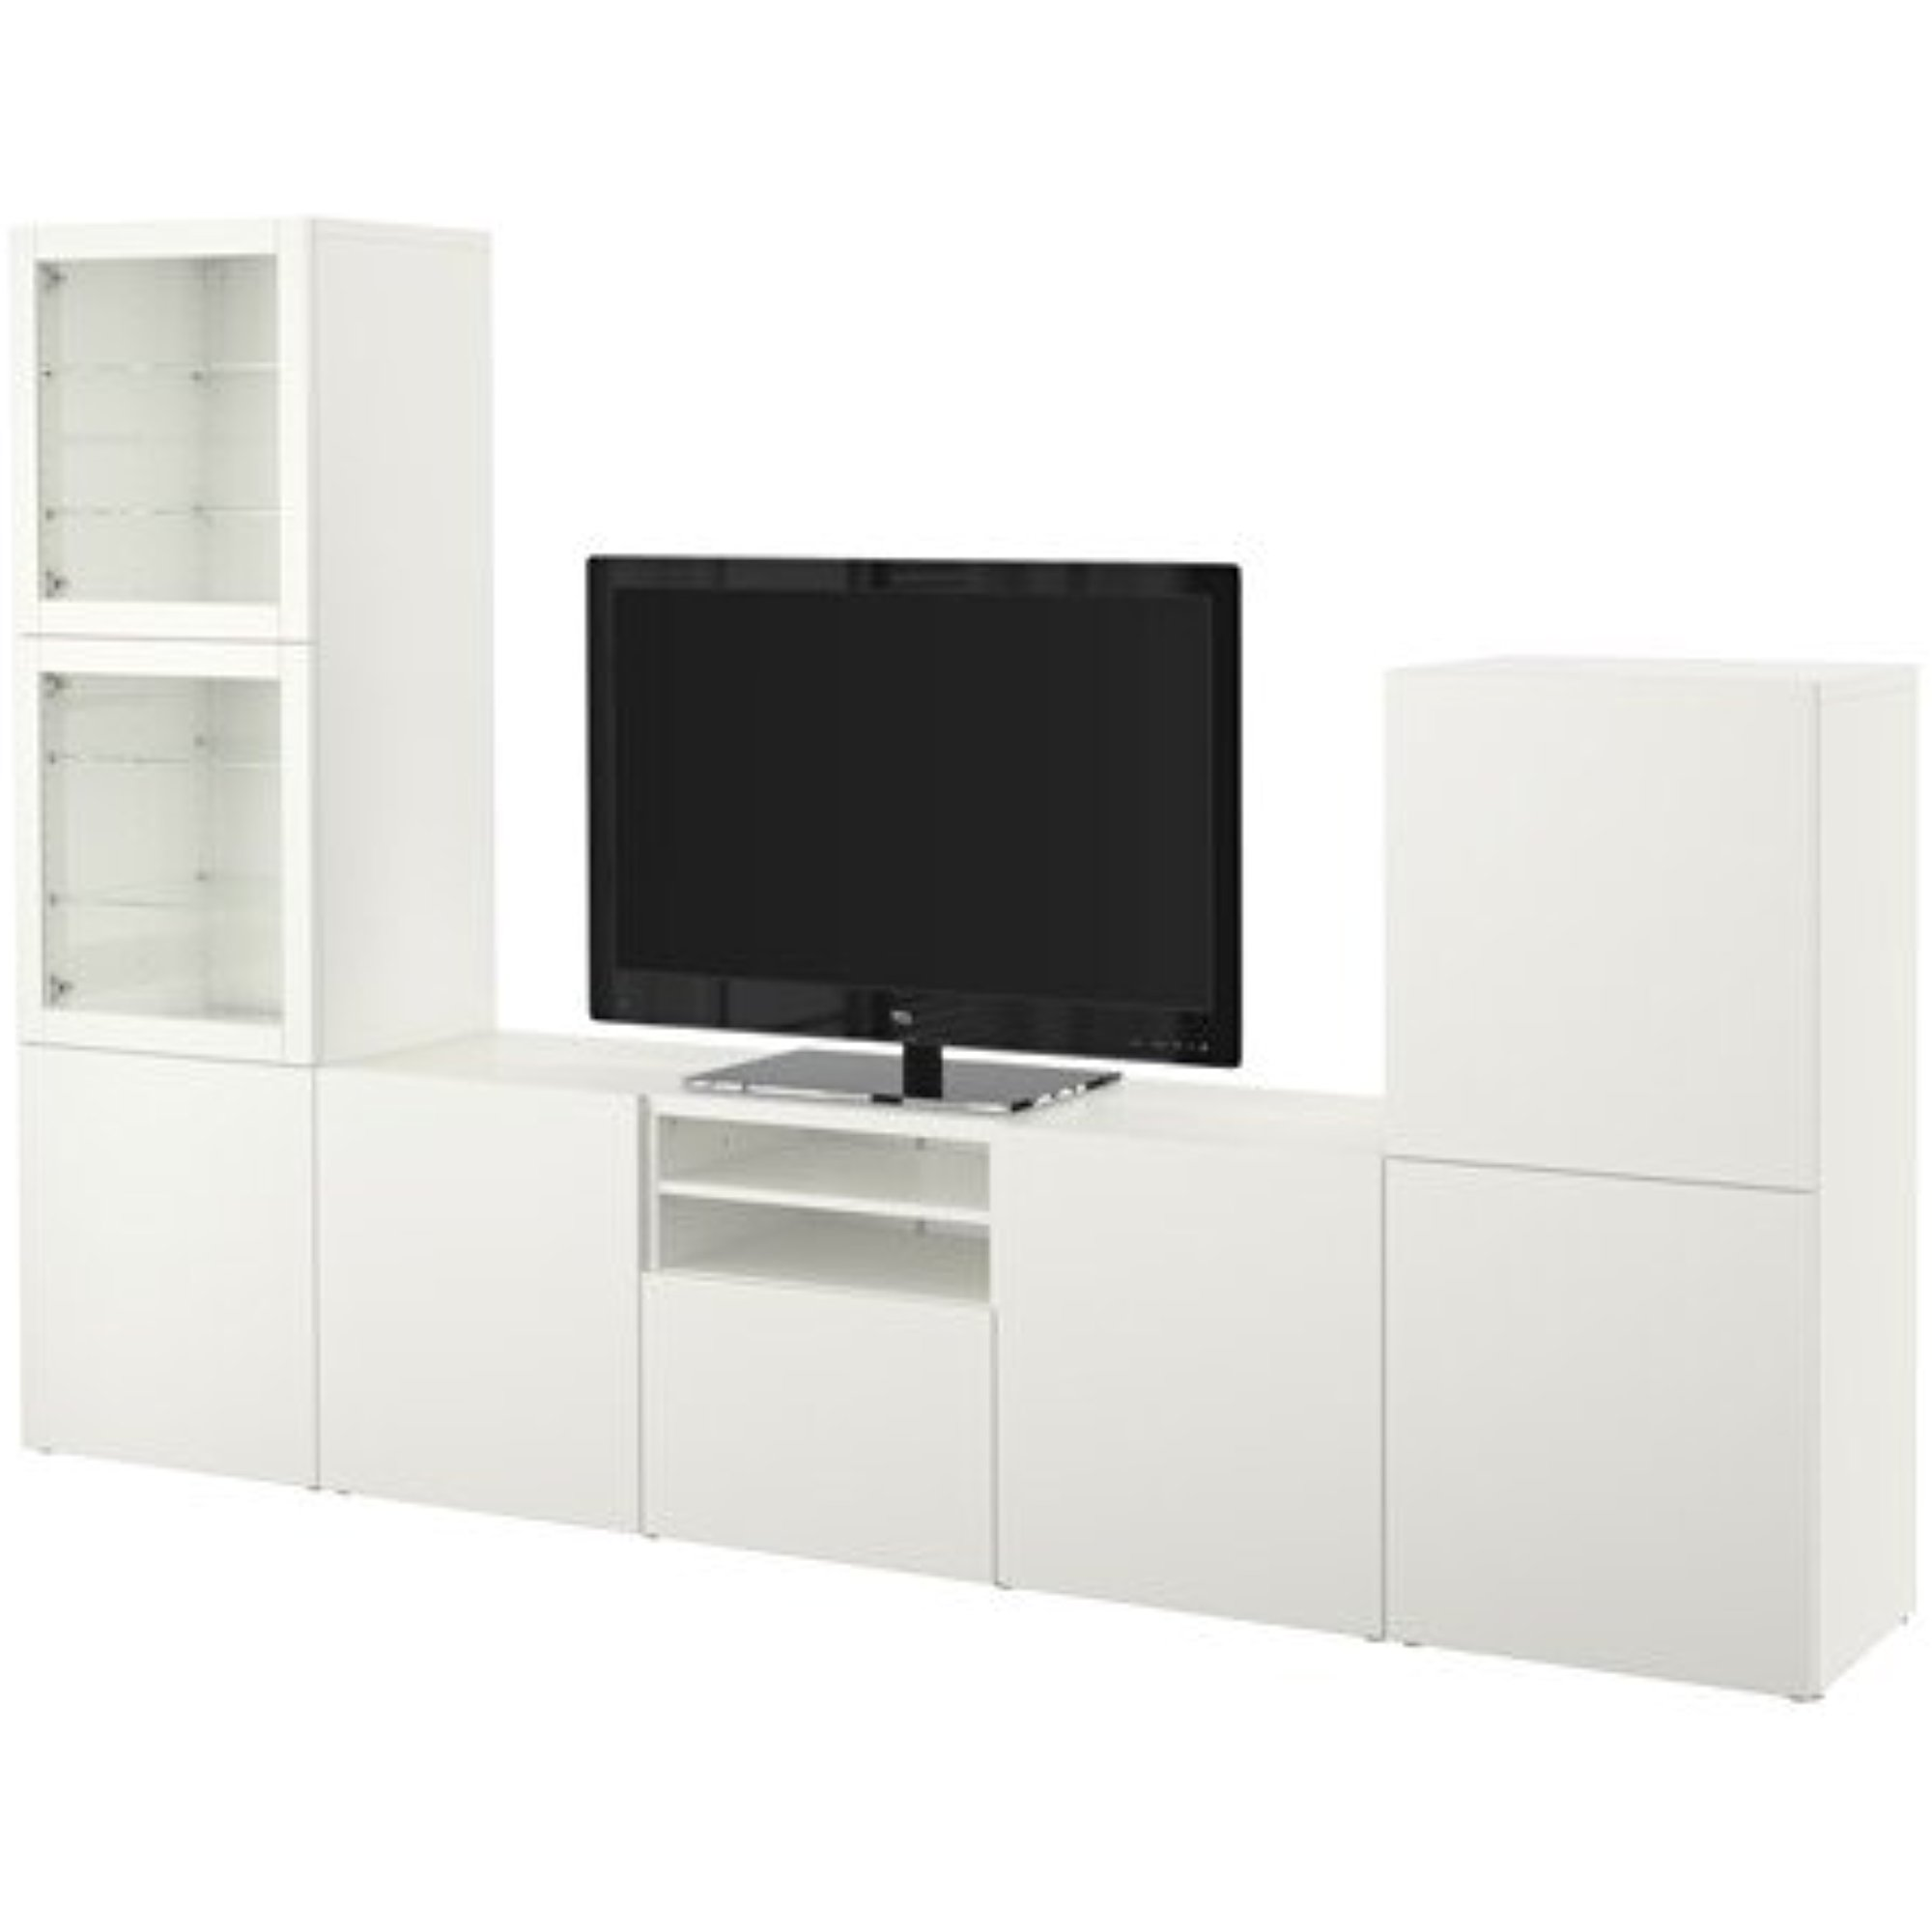 Ikea Tv Storage Combination With Soft Closing Doors And Drawers  # Meuble Tv Kaorka Ikea